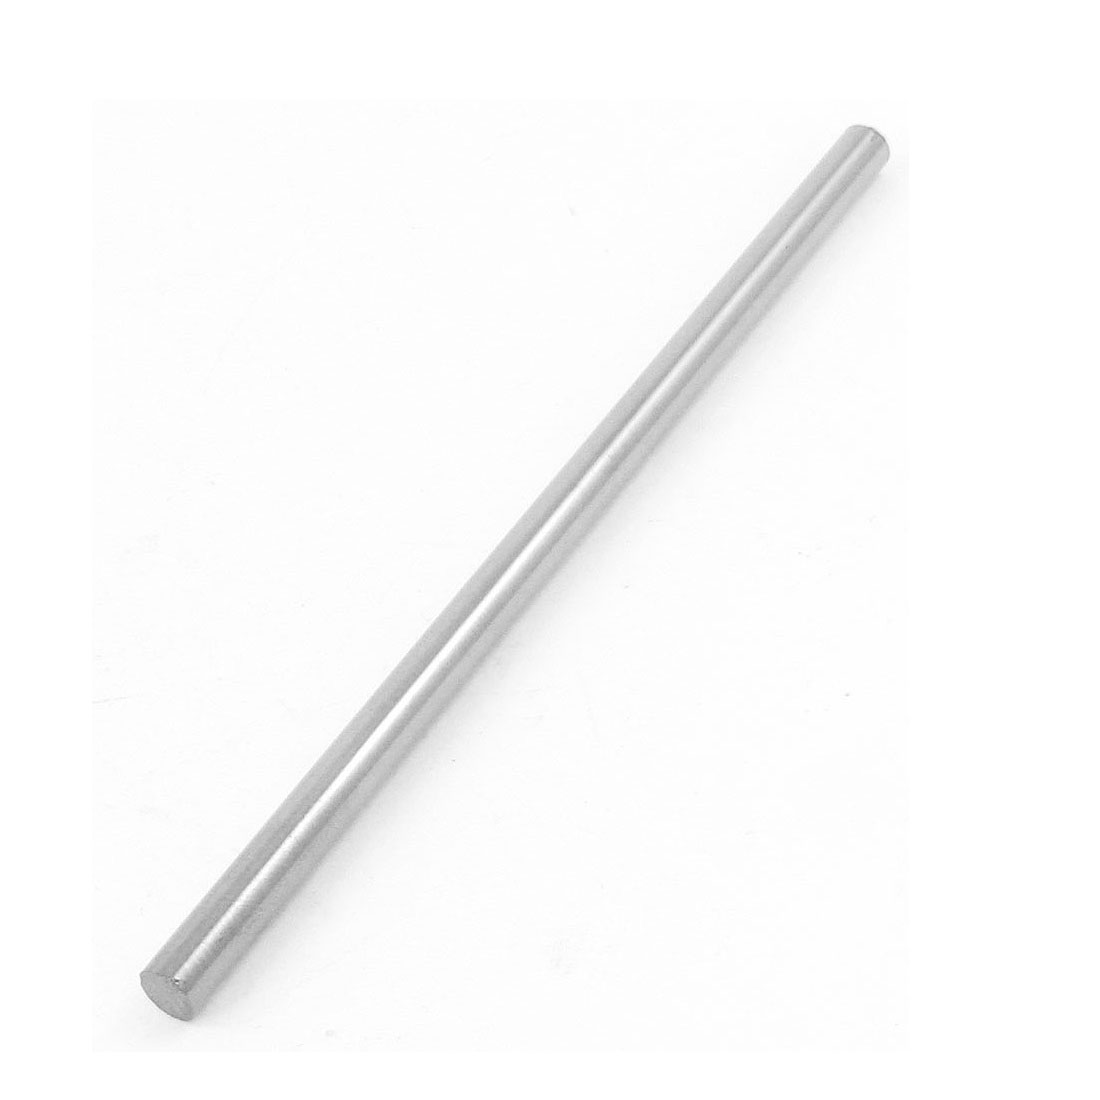 2.7mm x 100mm High Speed Steel Machine Grooving Tool Lathe Bar Dark Gray